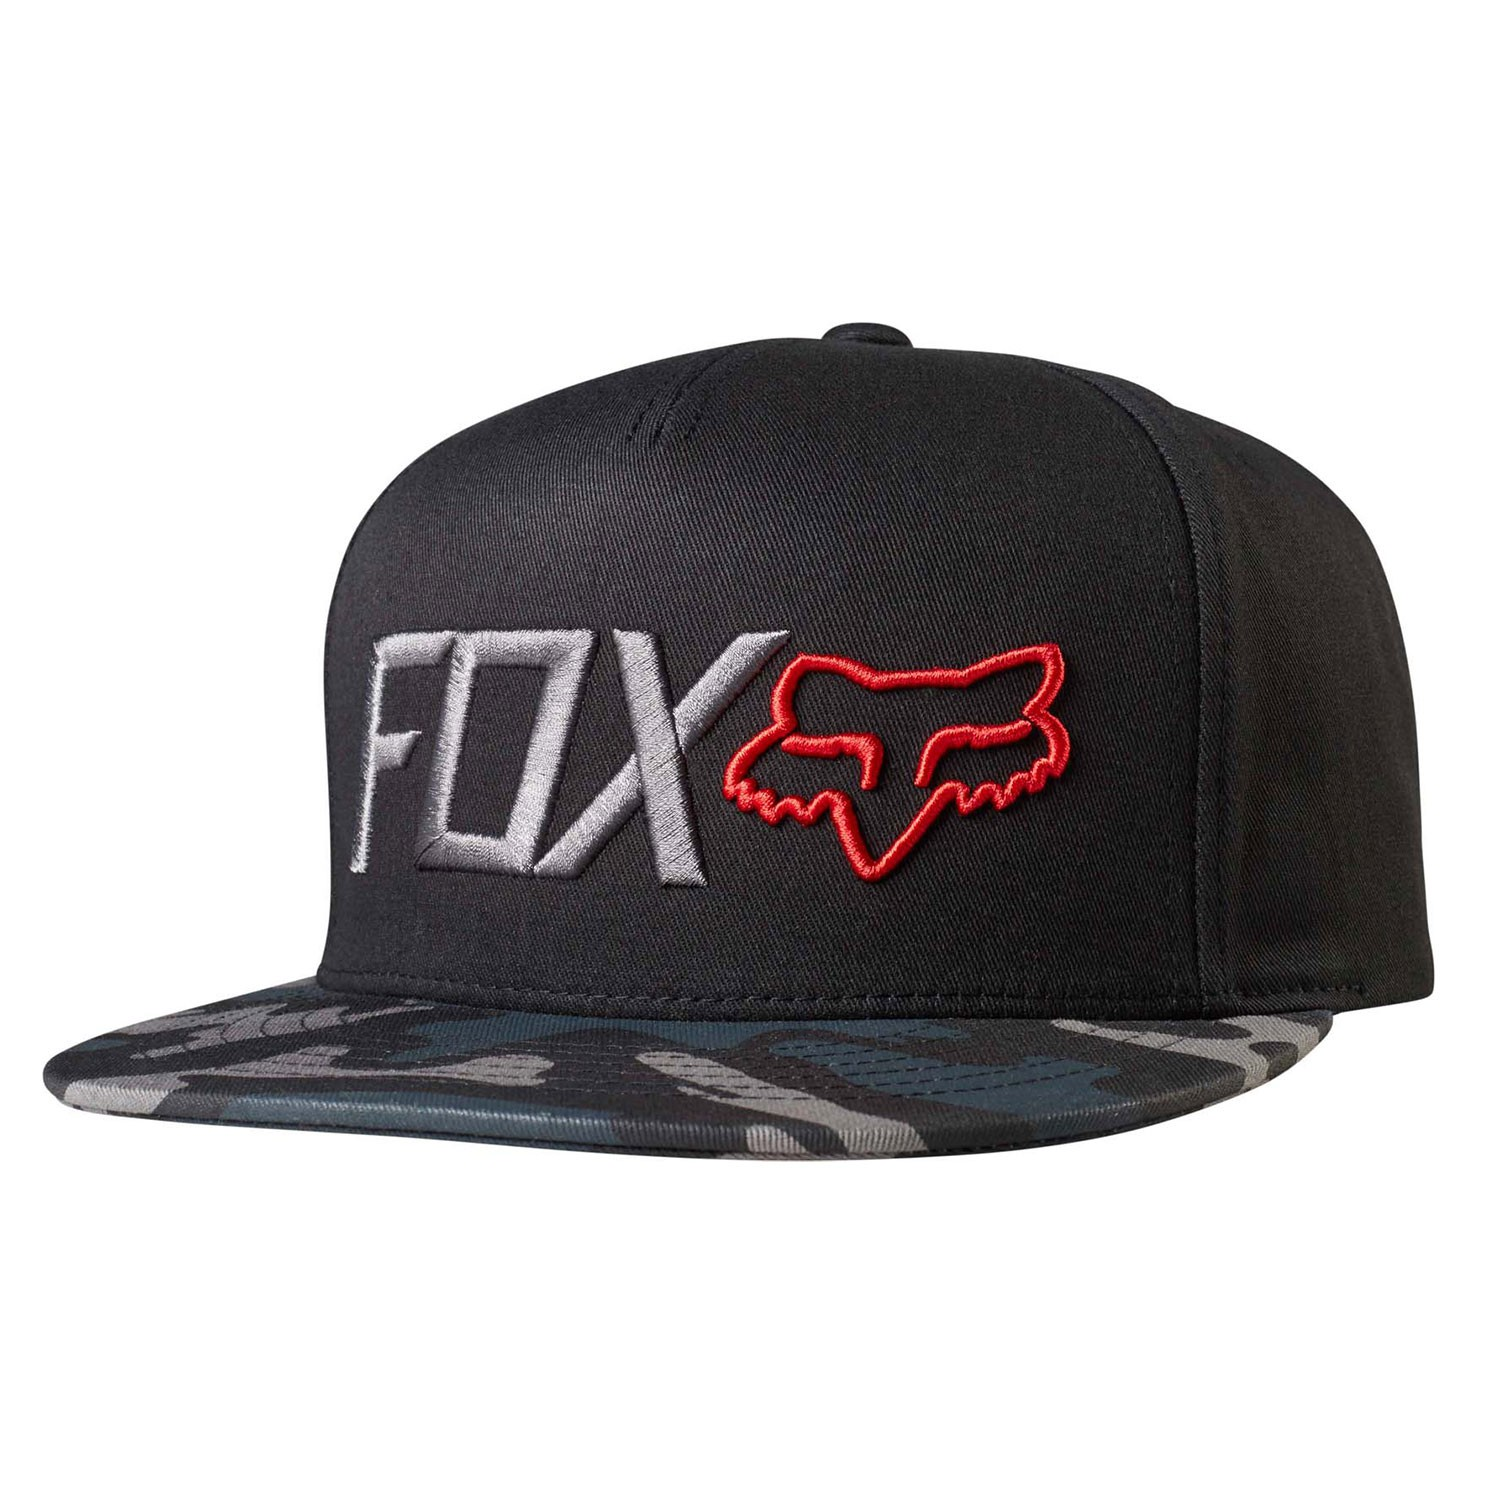 Kšiltovka Fox Obsessed Snapback black camo